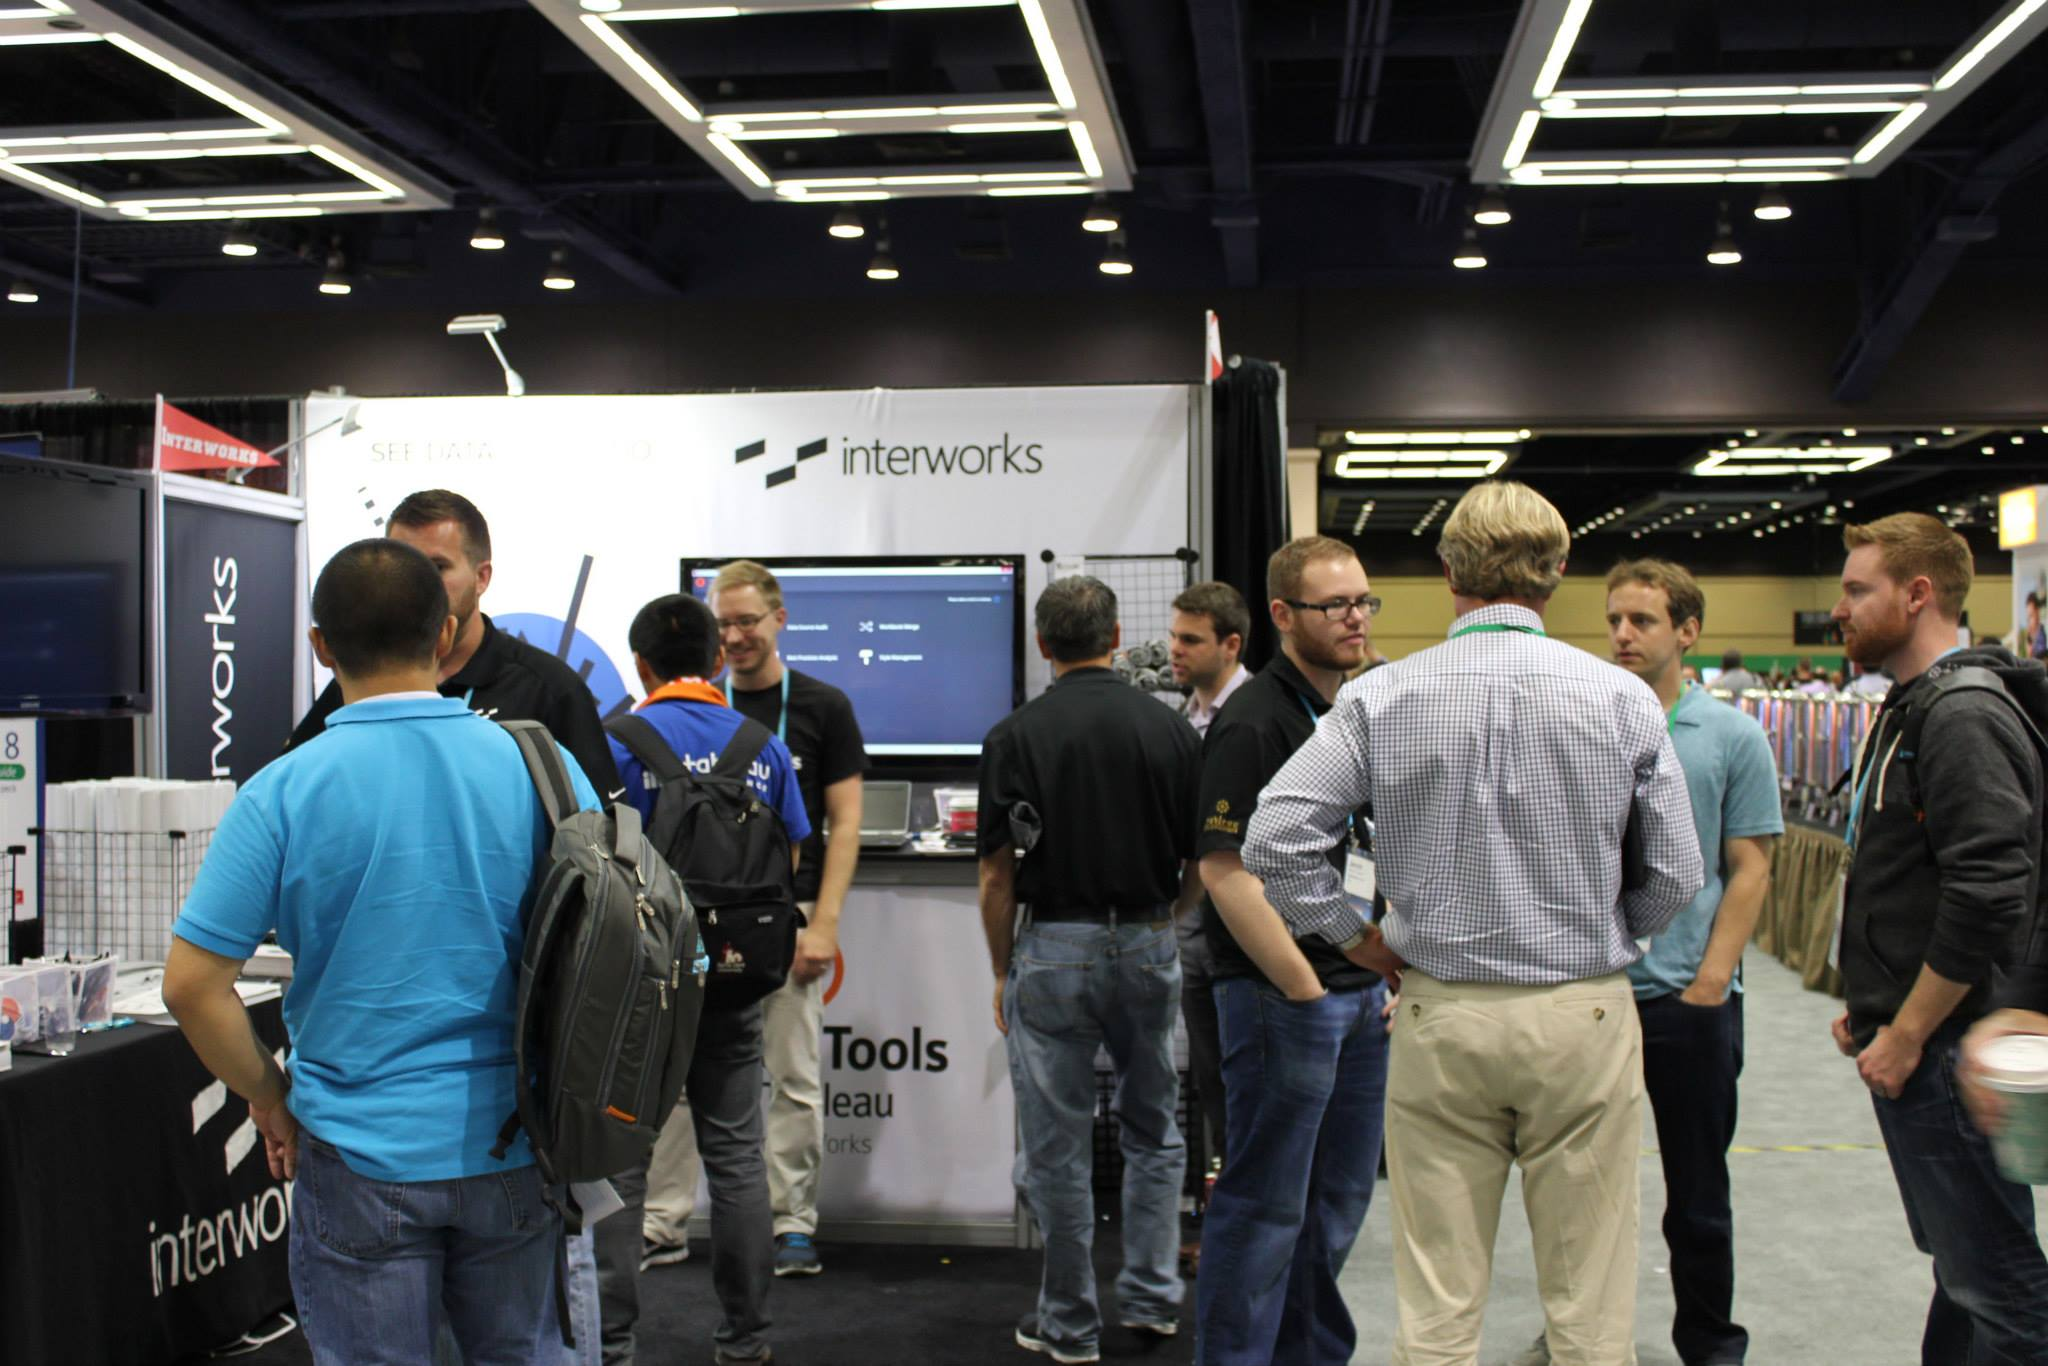 InterWorks' booth TC14